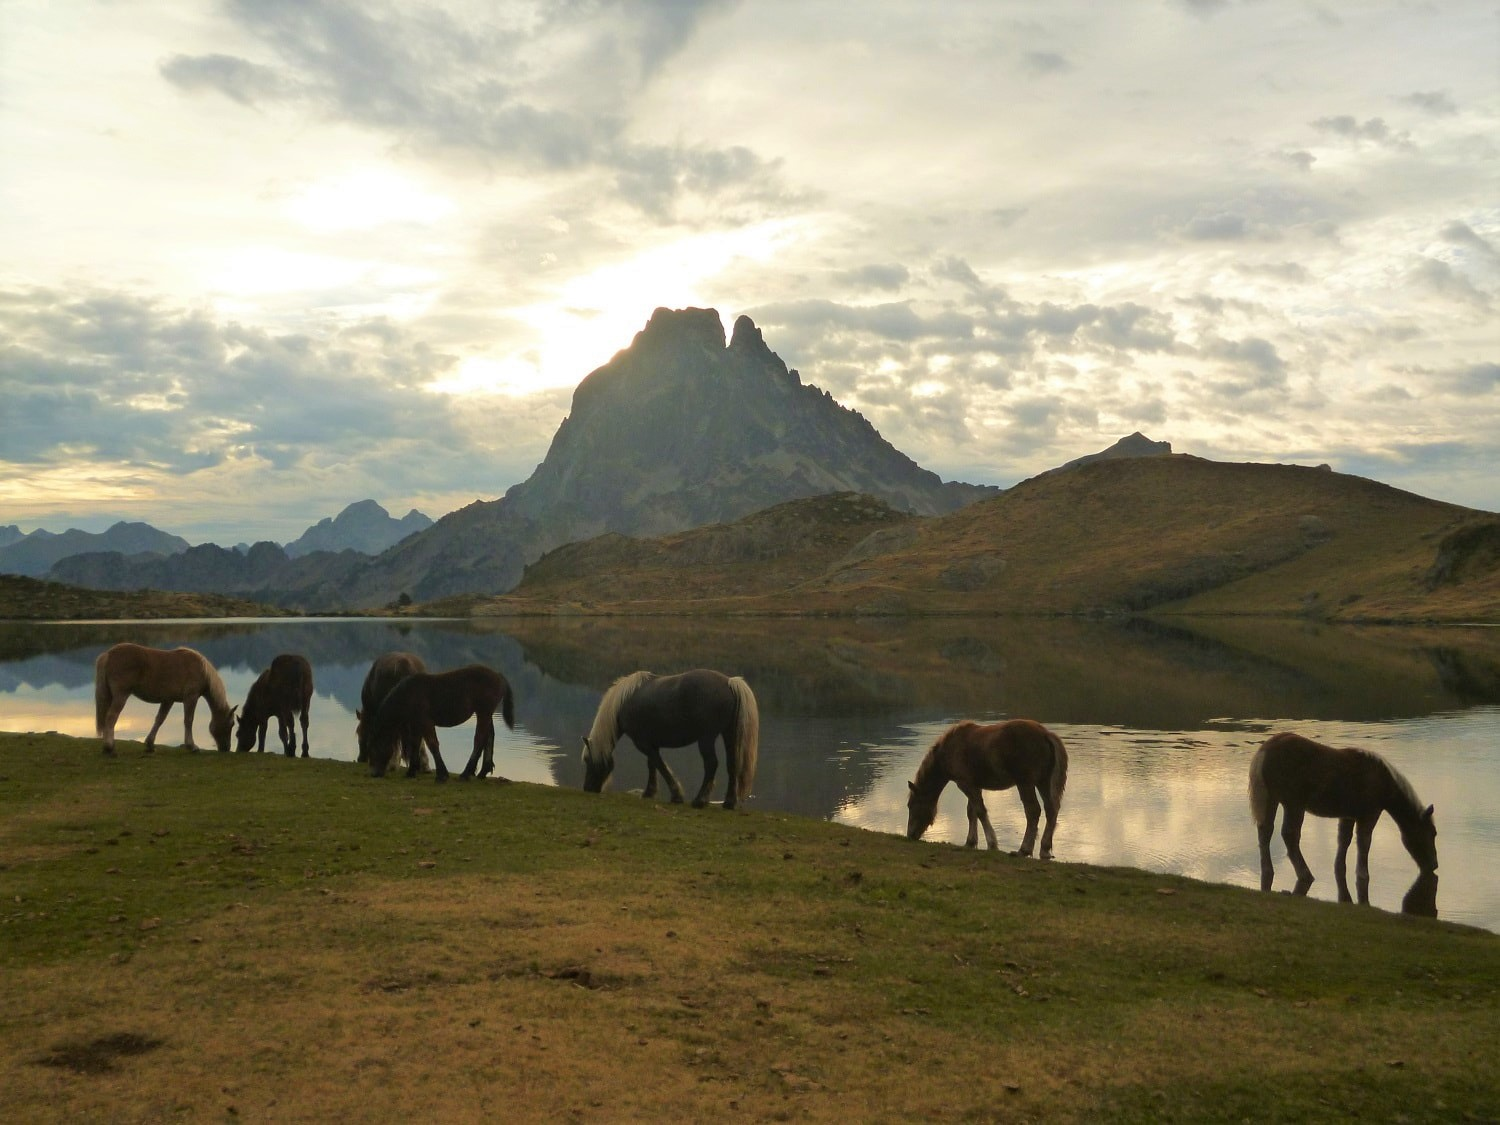 Wild horses are a common sight in the Pyrenees mountains — Here they are from the lake in front of Refuge d'Ayous with the Pic du Midi d'Ossau in the background.